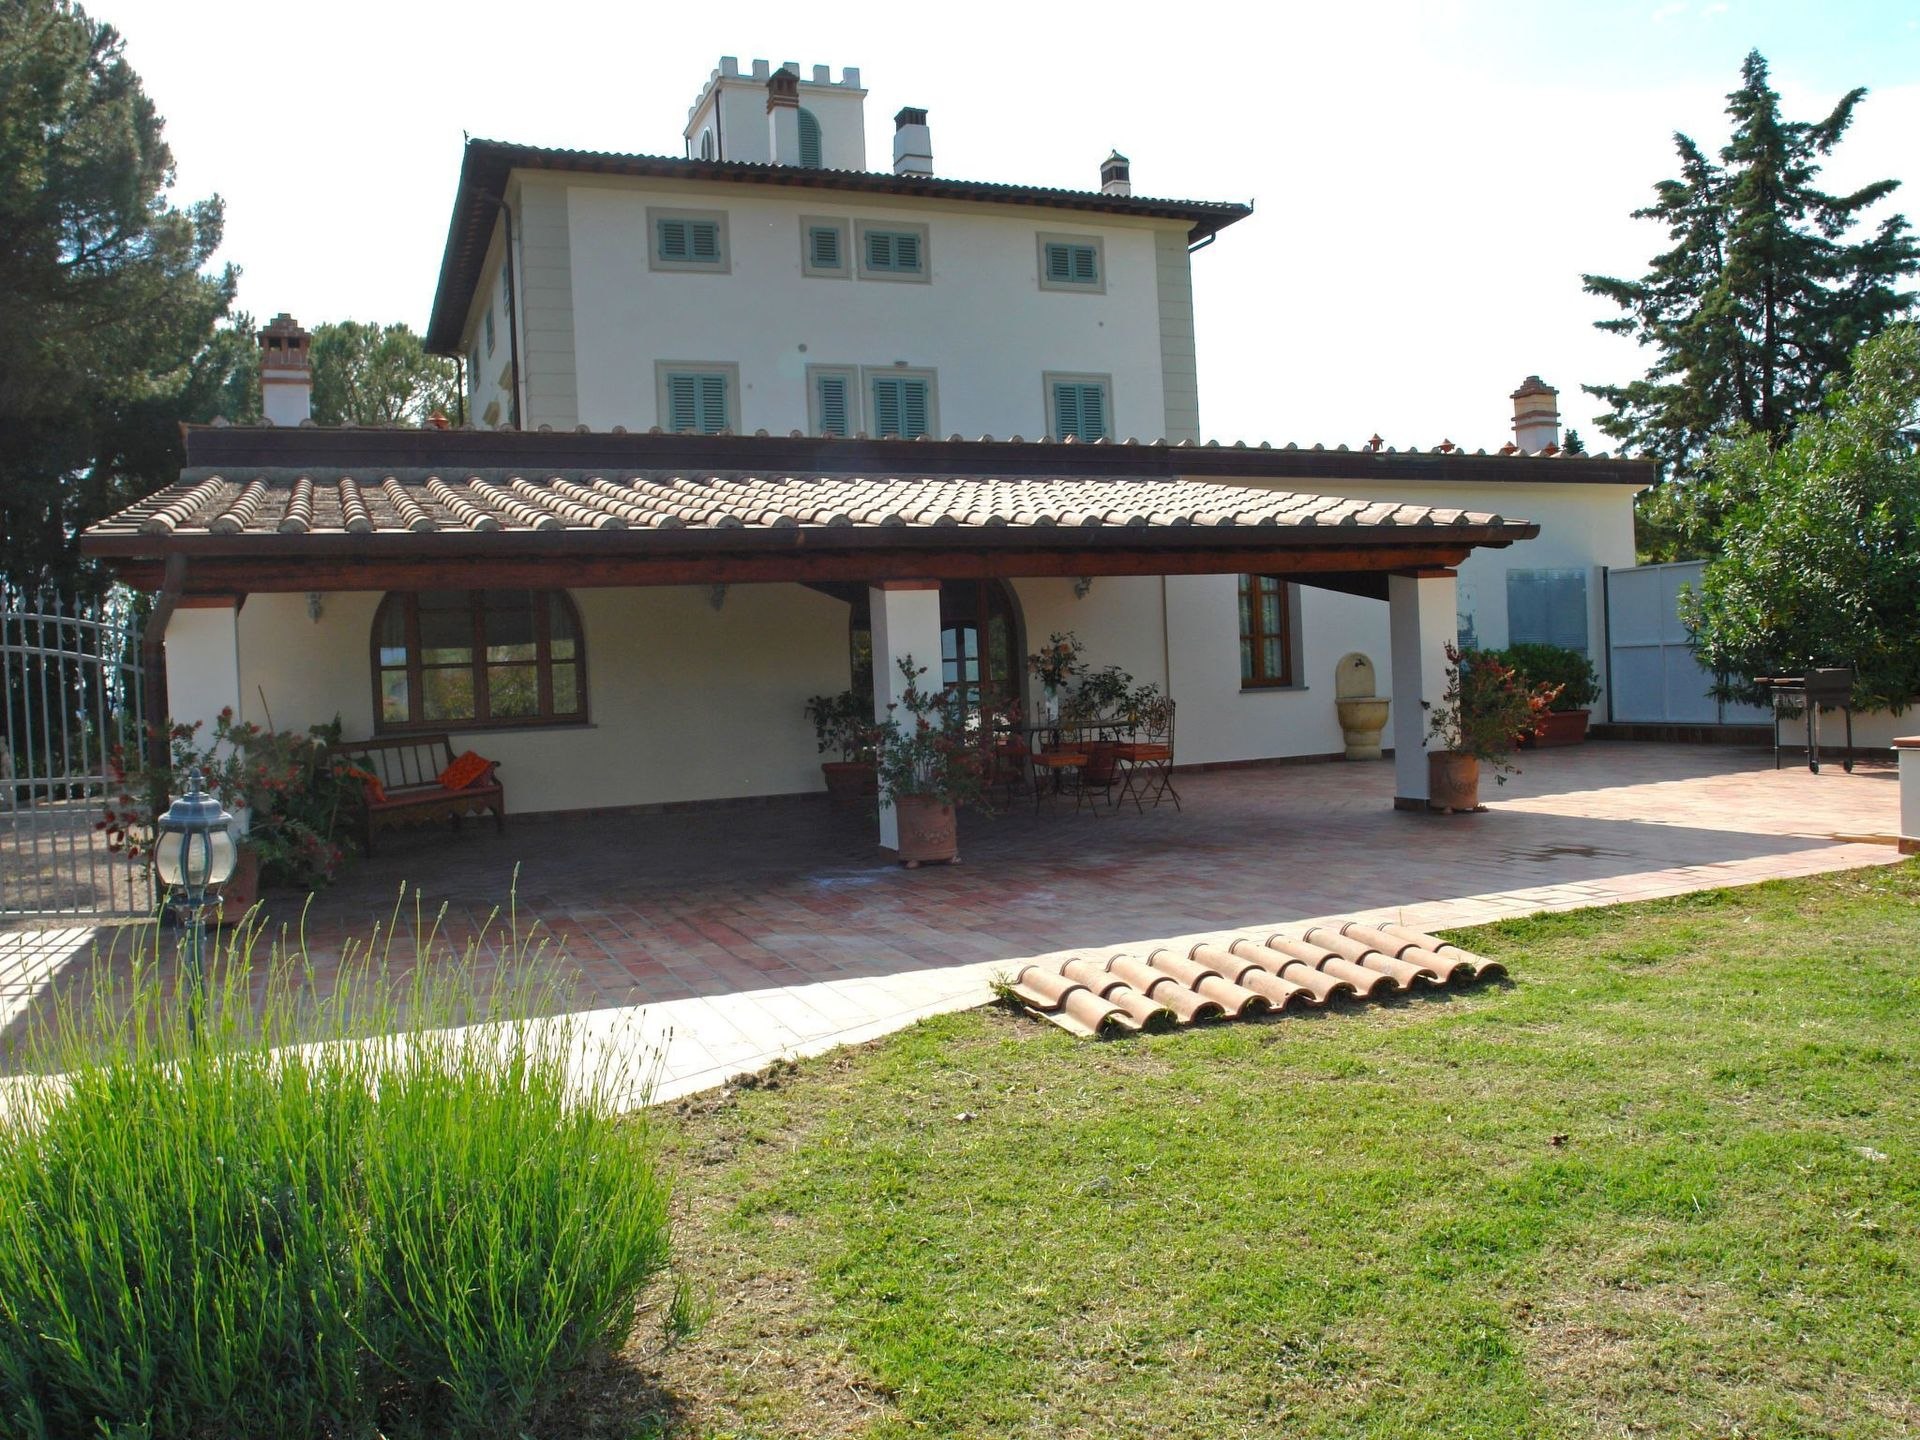 Beauty At Home Castelfiorentino dependance: villa that sleeps 2 people in 1 bedrooms